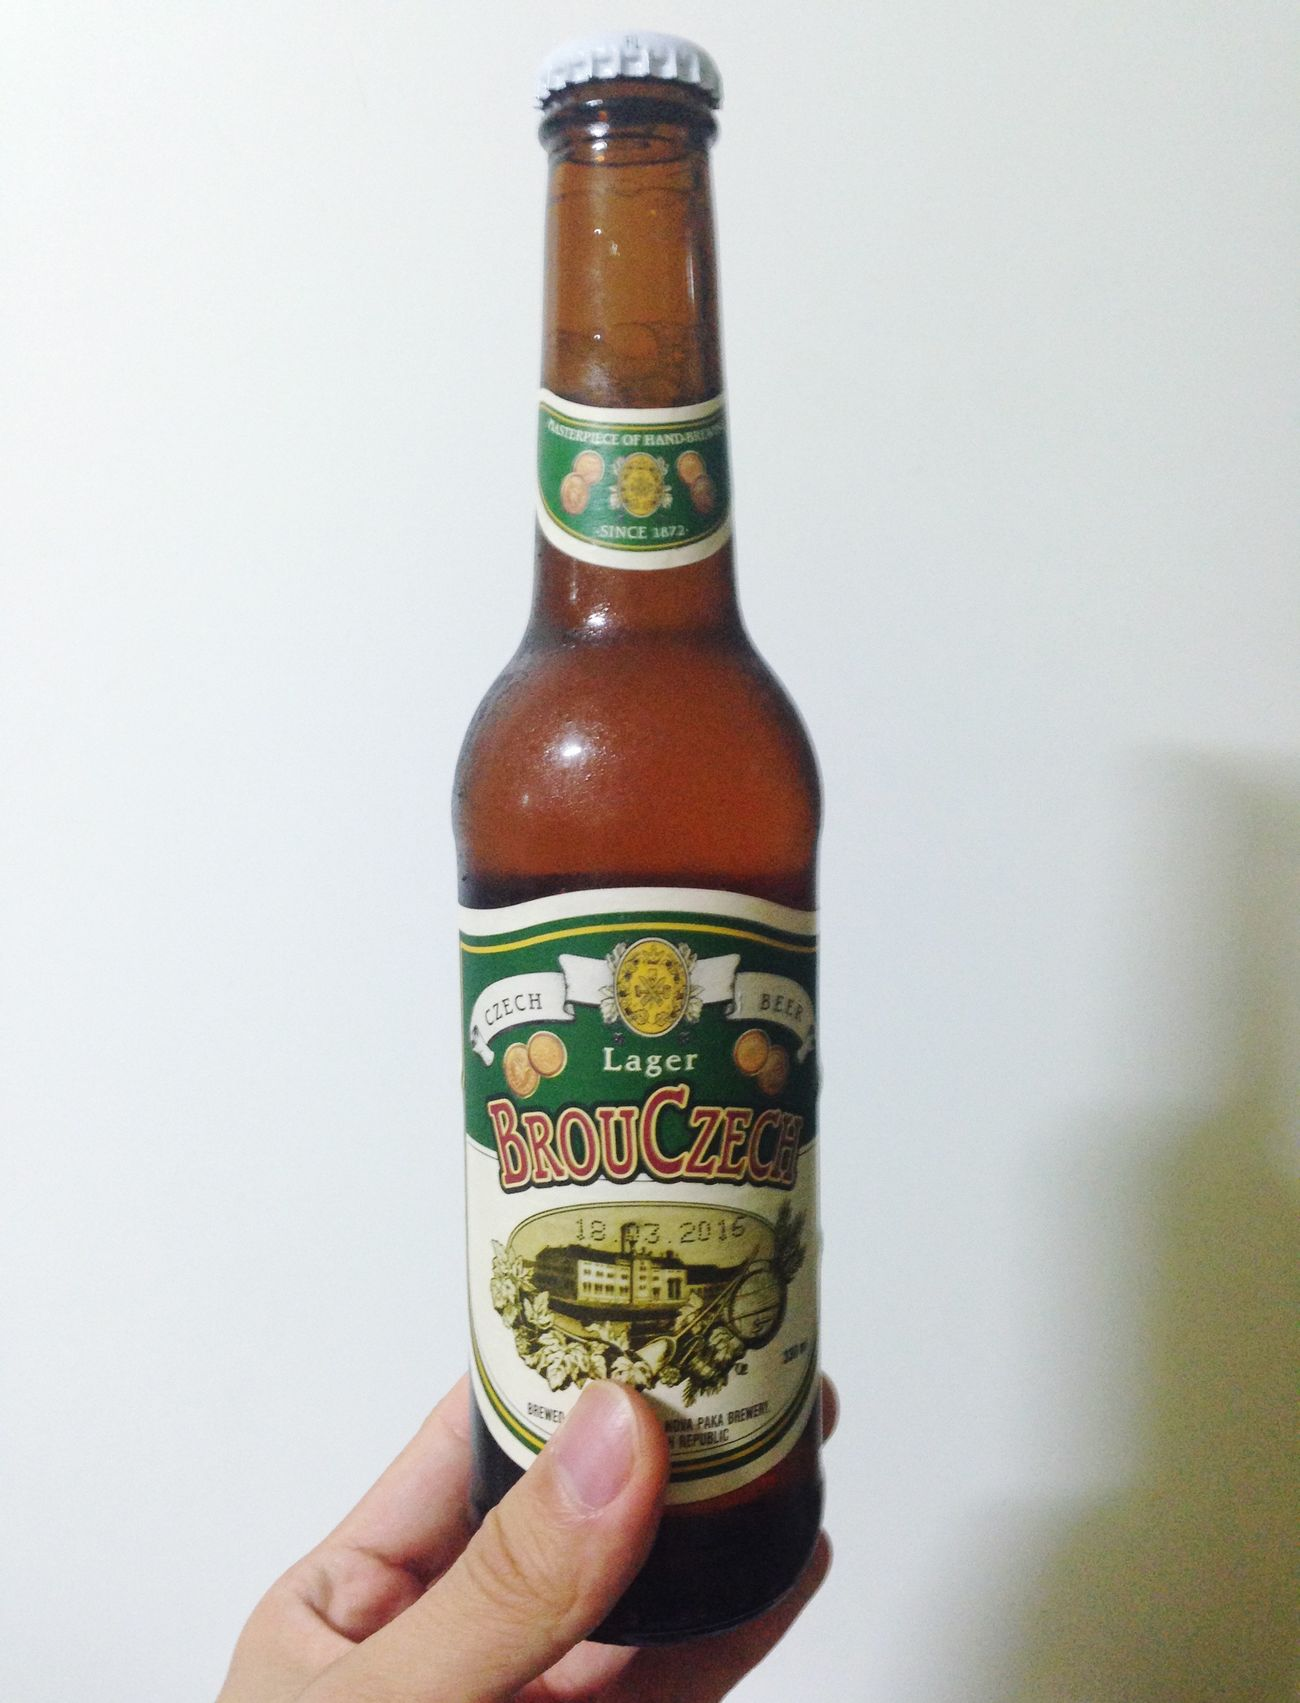 Beer Lager Drinks Czech Beer 체코맥주brou czech. home brewing이라는데 톡쏜다 굳